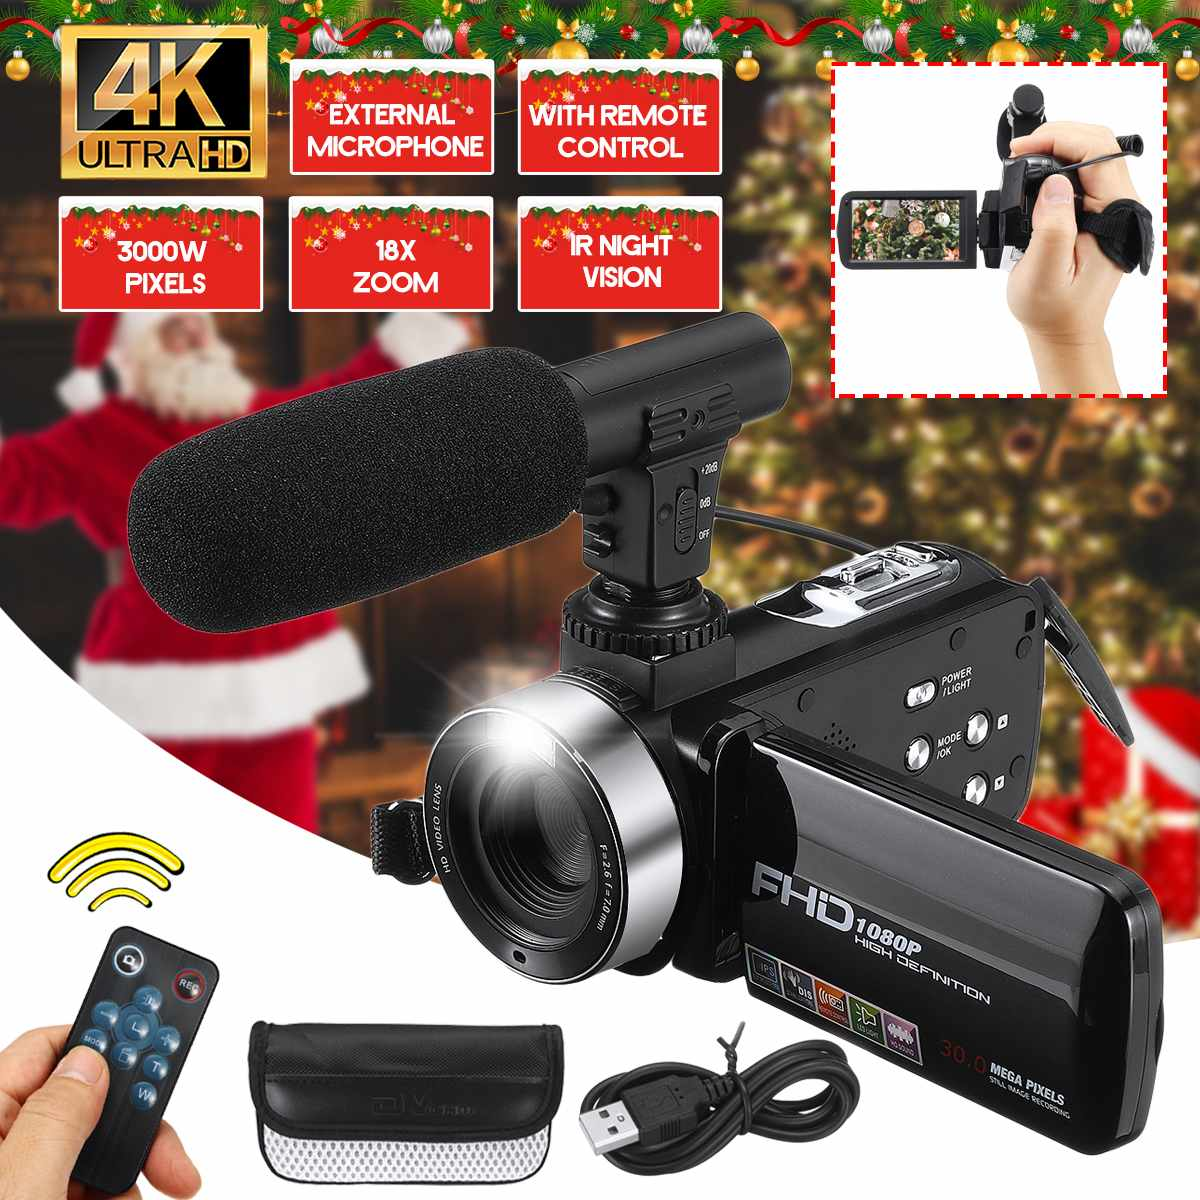 Professional 30mp 4k Hd Camcorder Video Camera Night Vision 3.0 Inch Lcd Camera 18x Digital Zoom Camera With Mic Meticulous Dyeing Processes